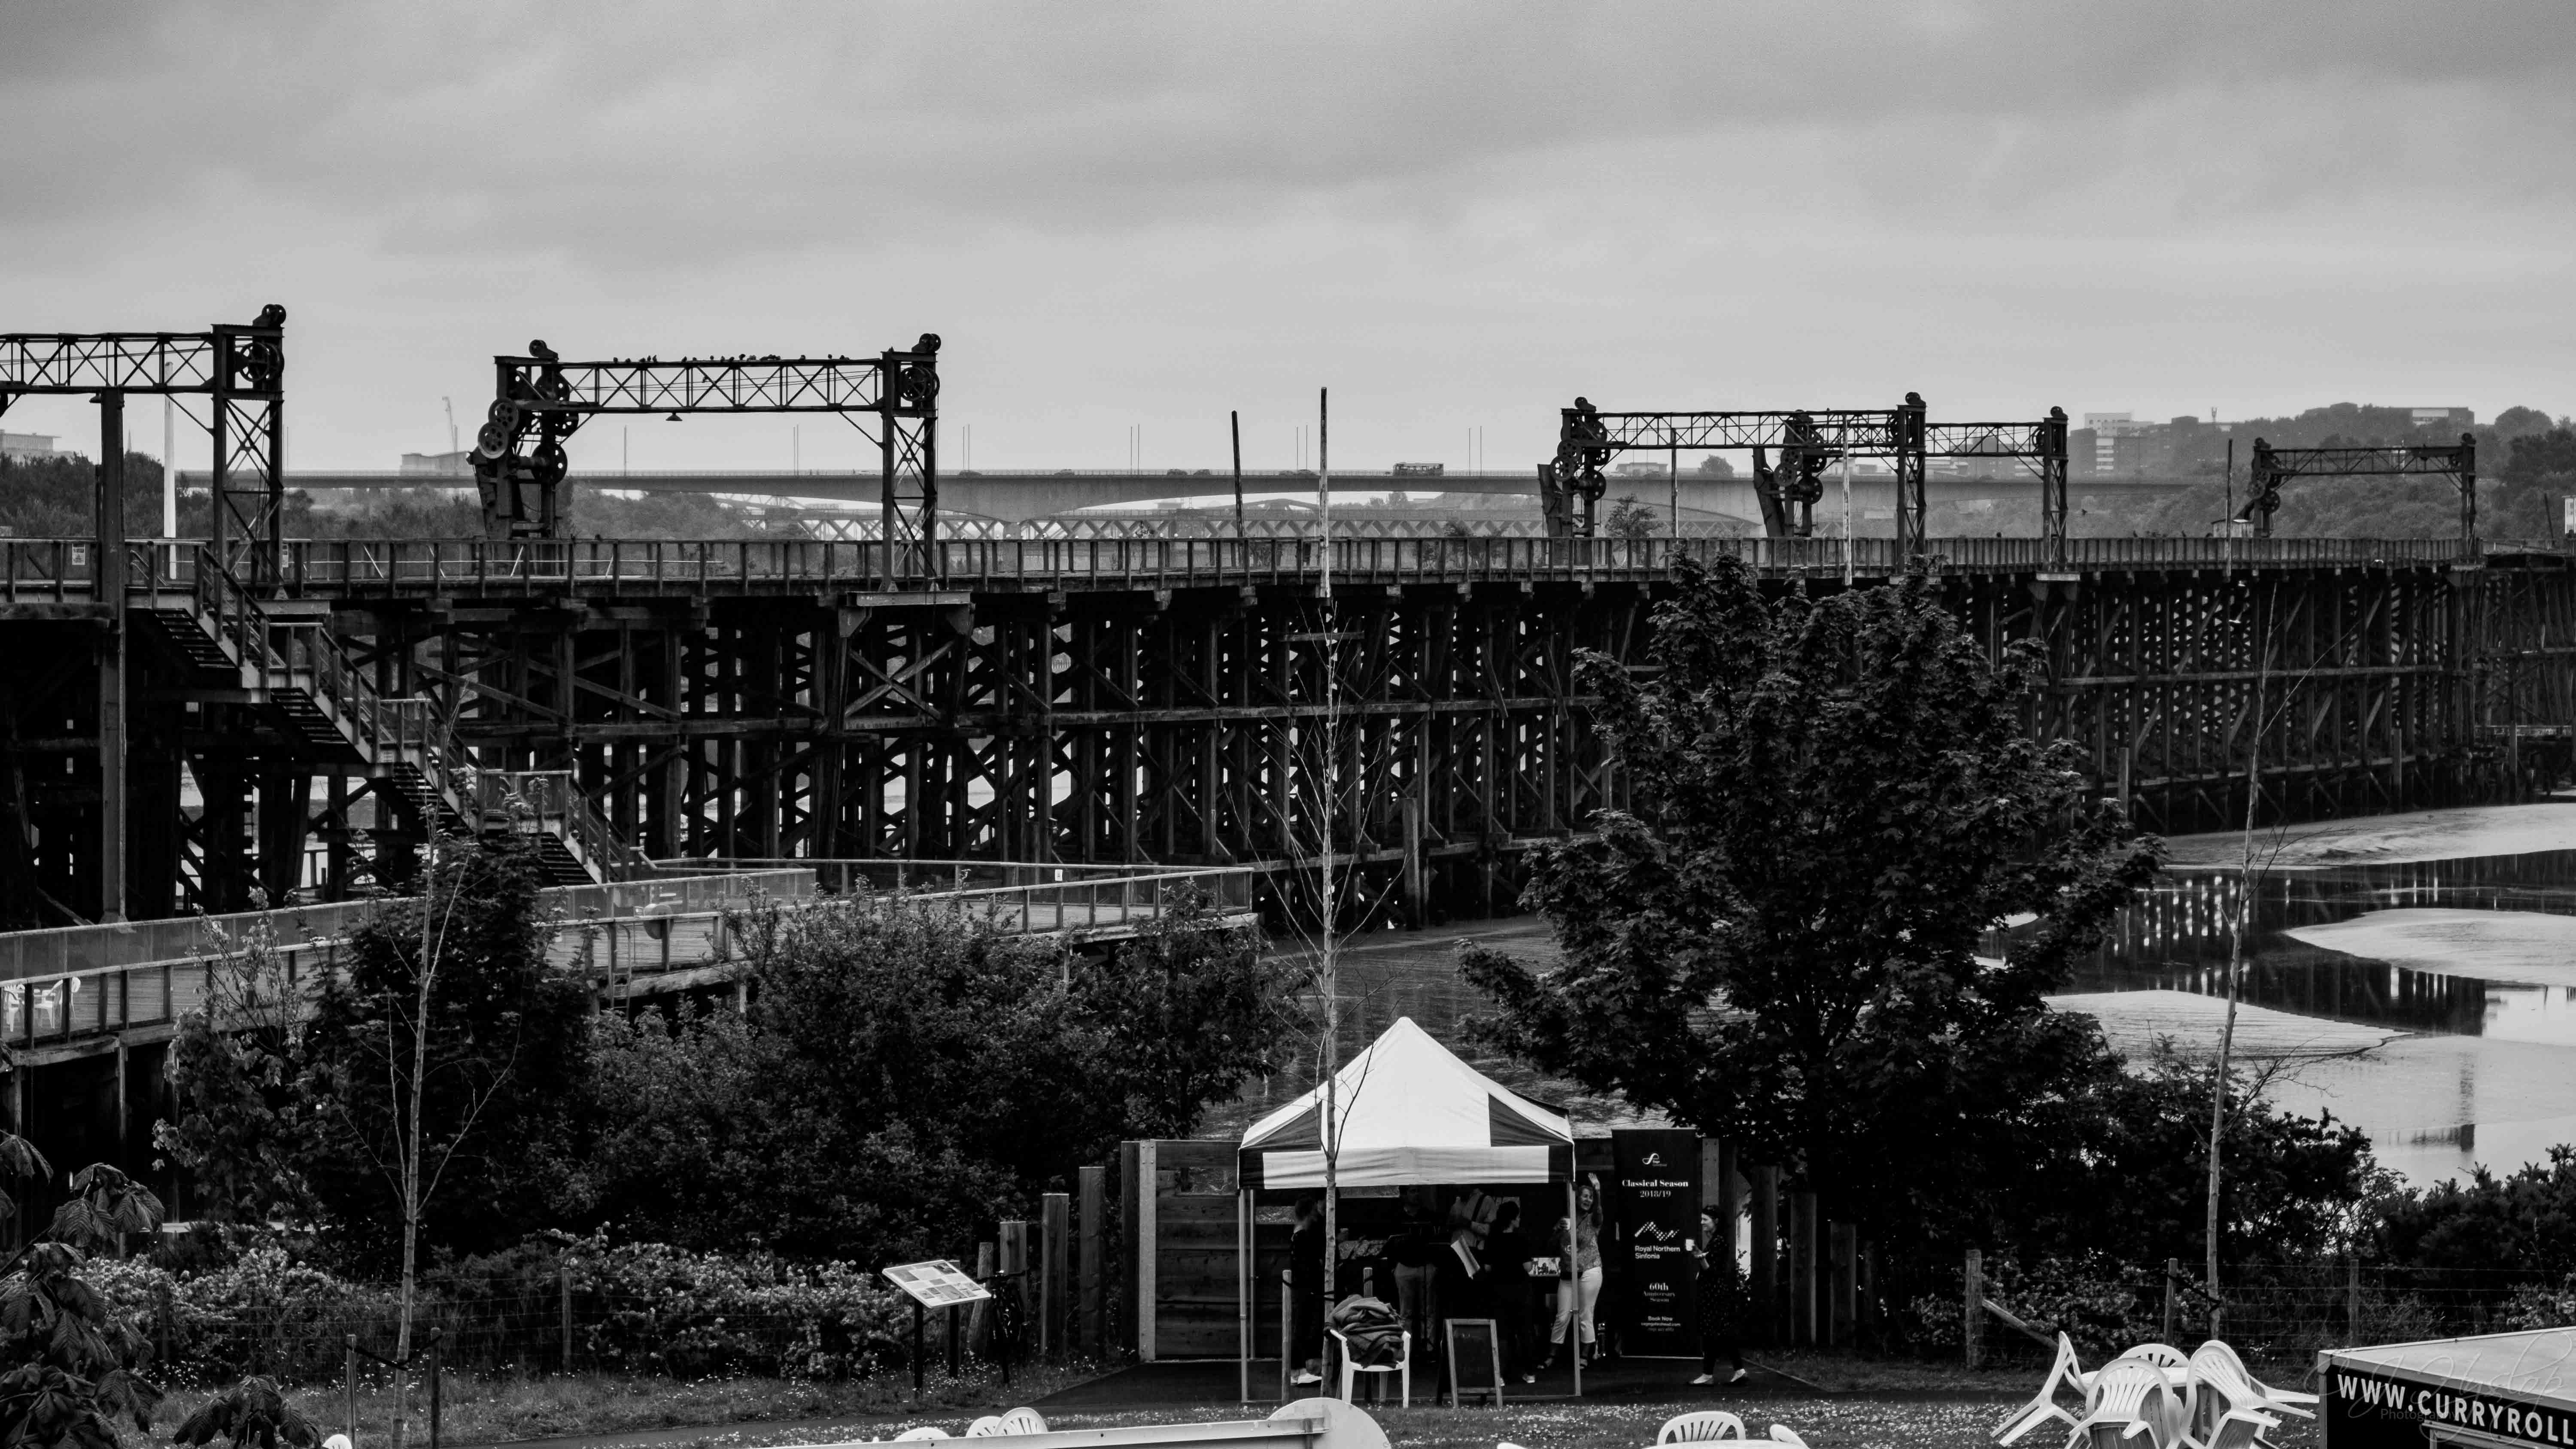 Dunston Staiths – July 2019